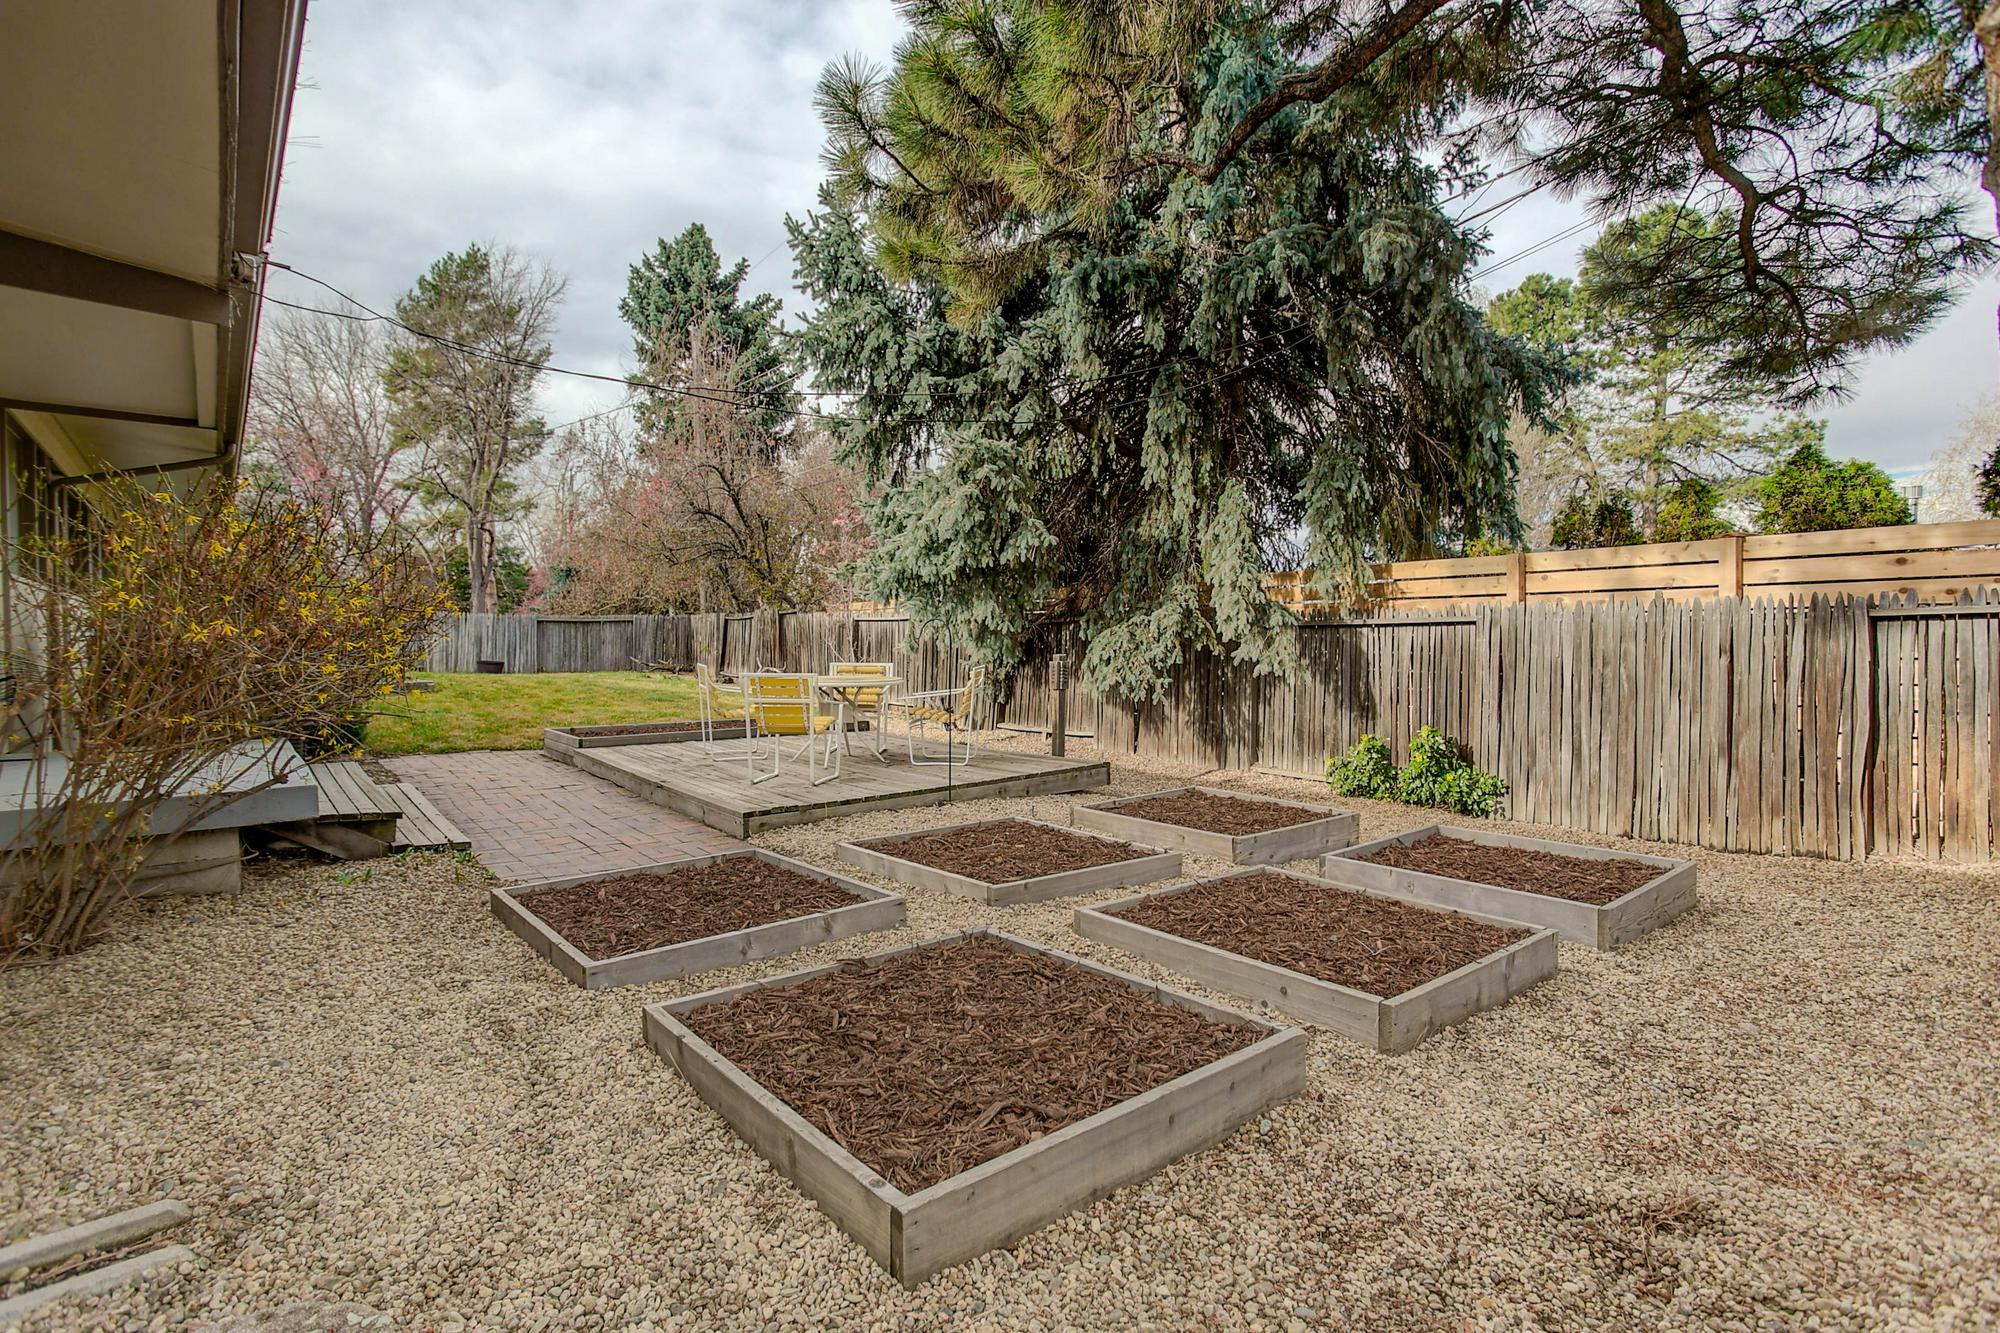 Listassistimage-84053-web_ready-3011%2bsouth%2bfranklin%2bstreet_plantingbeds-2000x2000